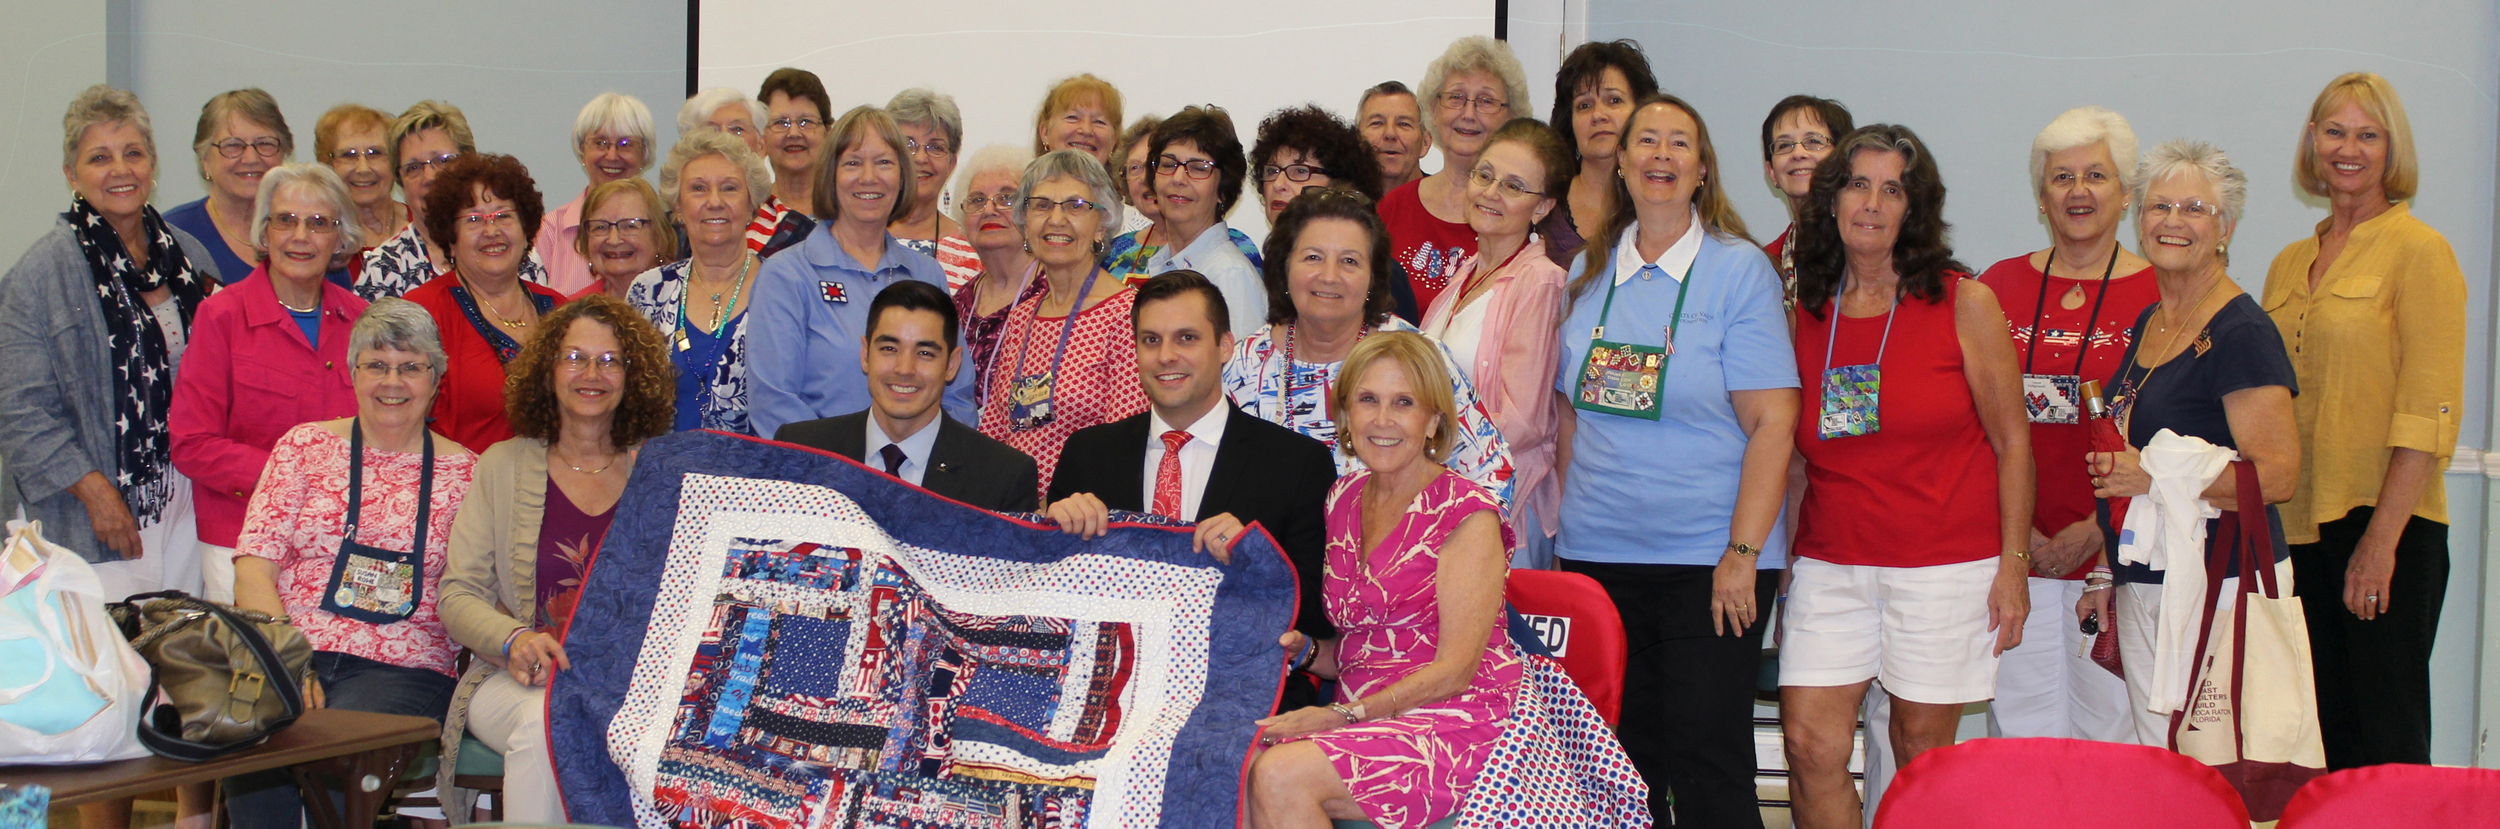 Quilters and Vets, et al July 2015.jpg